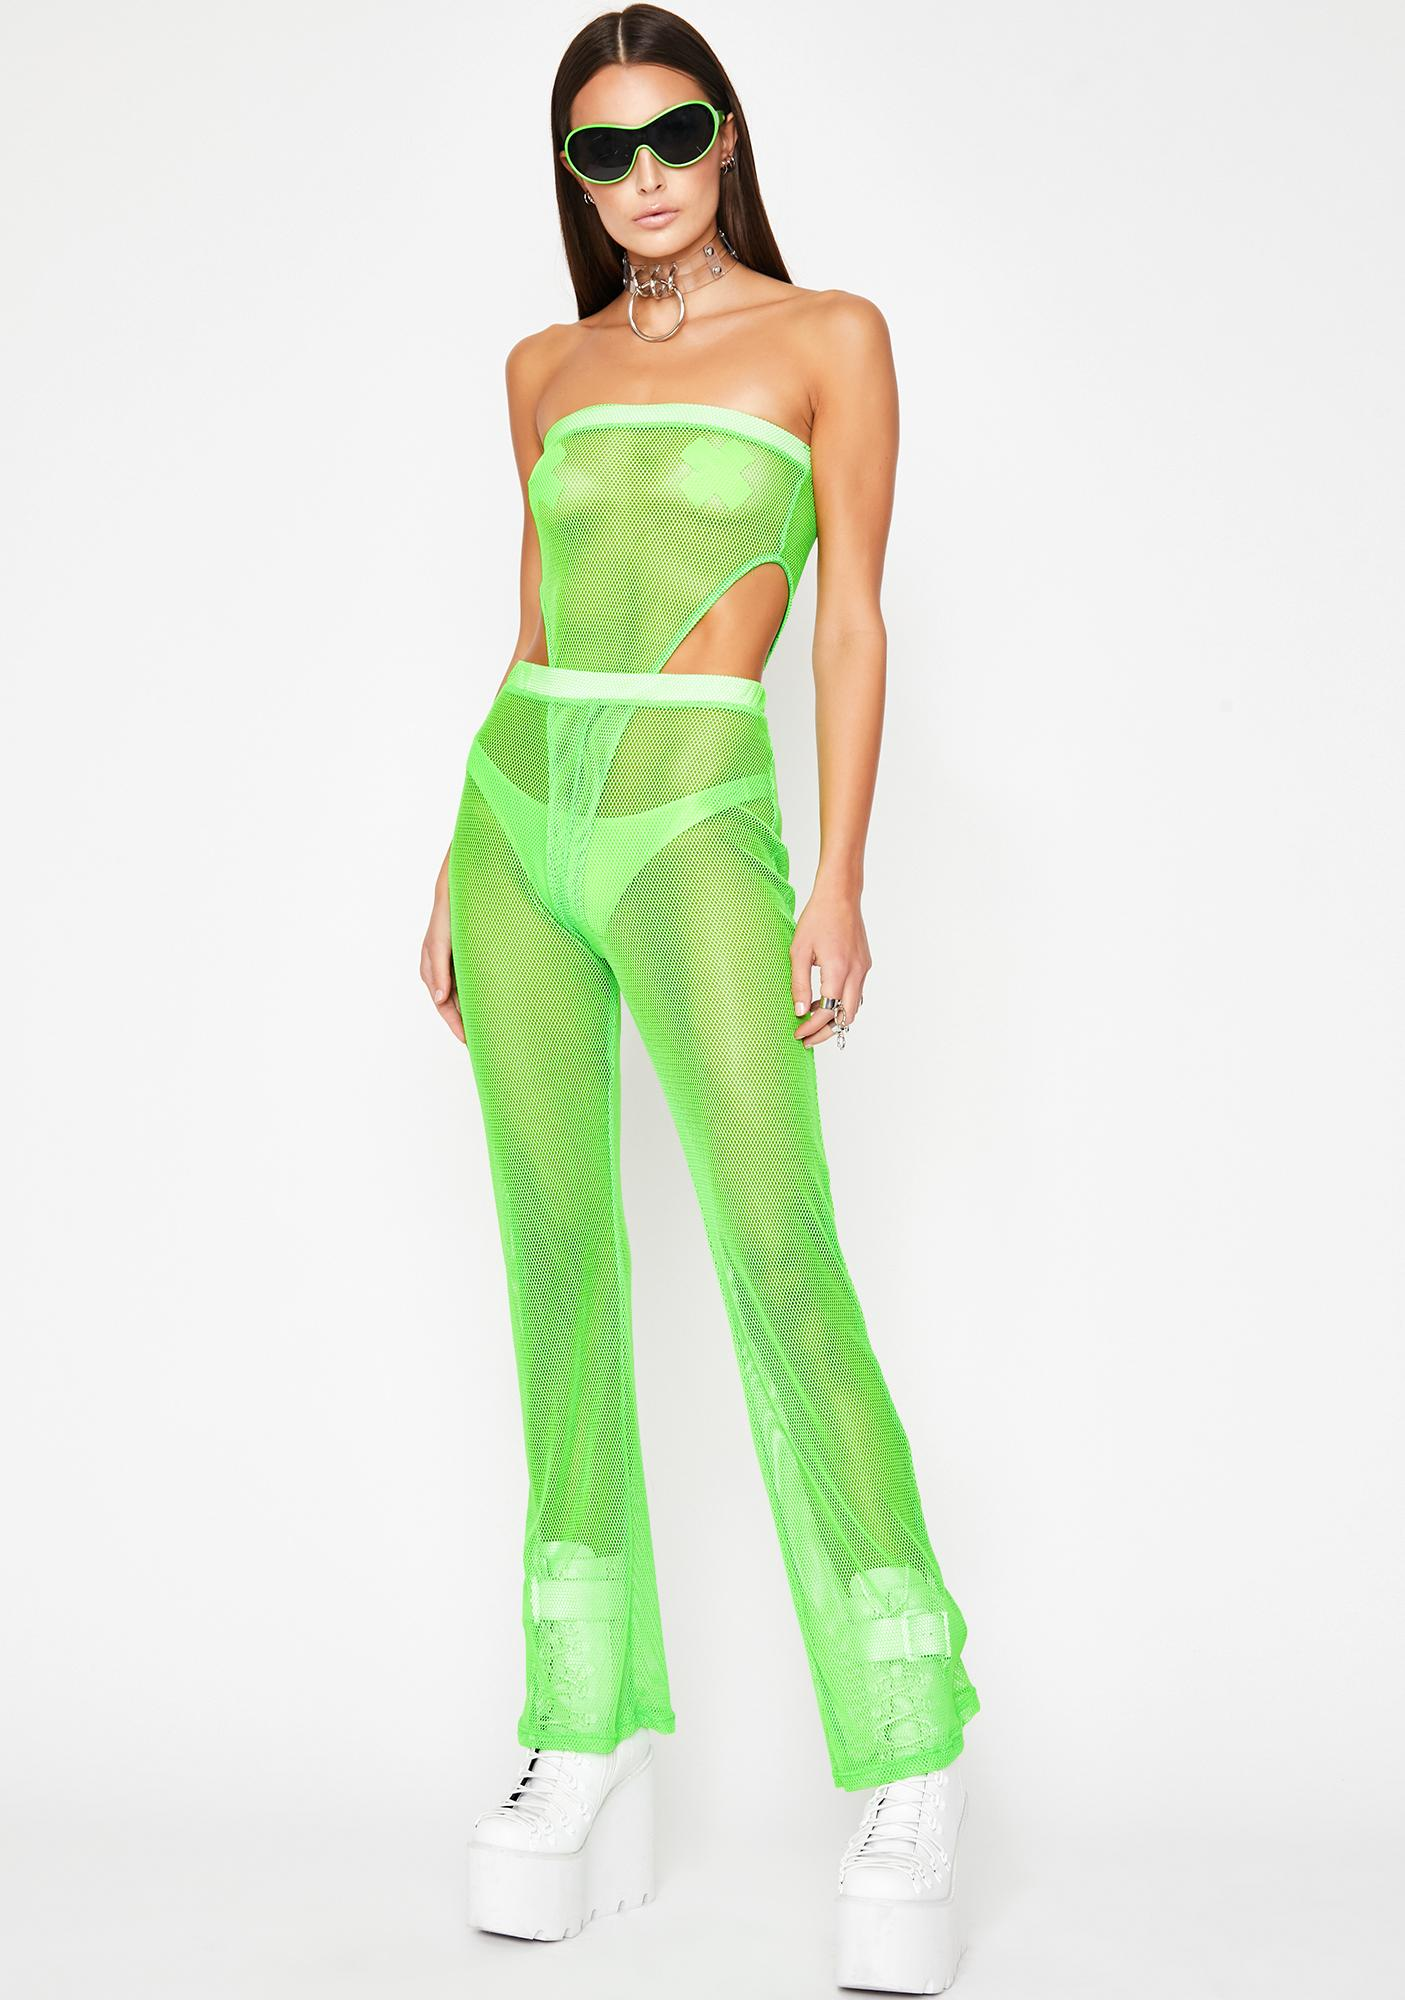 Slime Rated Naughty Mesh Bodysuit